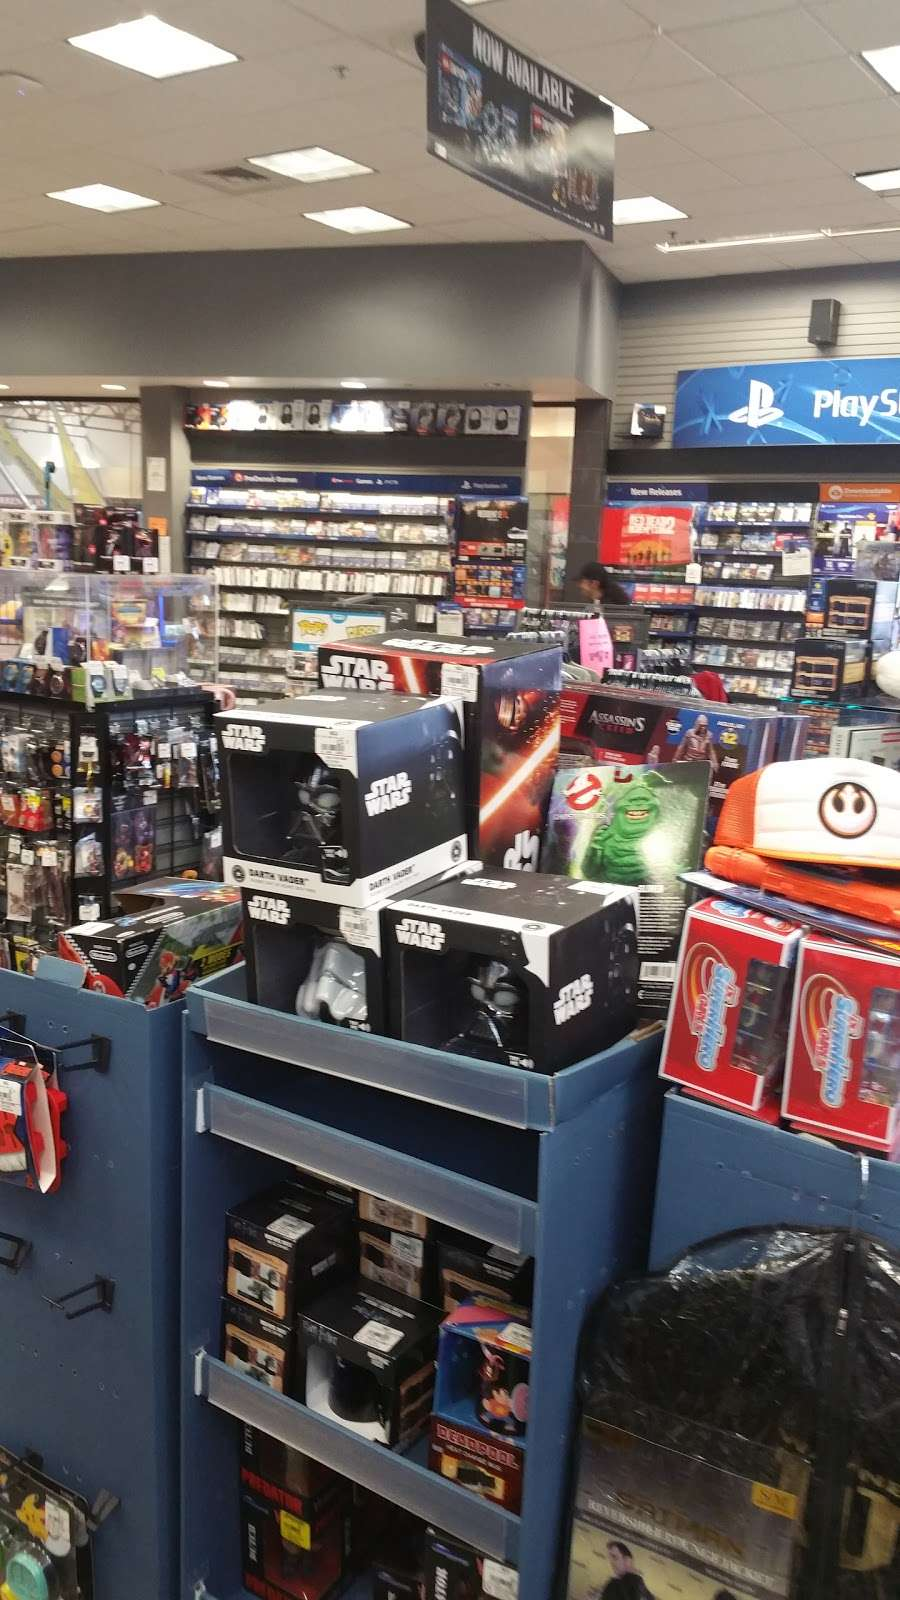 GameStop - electronics store  | Photo 9 of 10 | Address: 447 Great Mall Dr, Milpitas, CA 95035, USA | Phone: (408) 956-9213